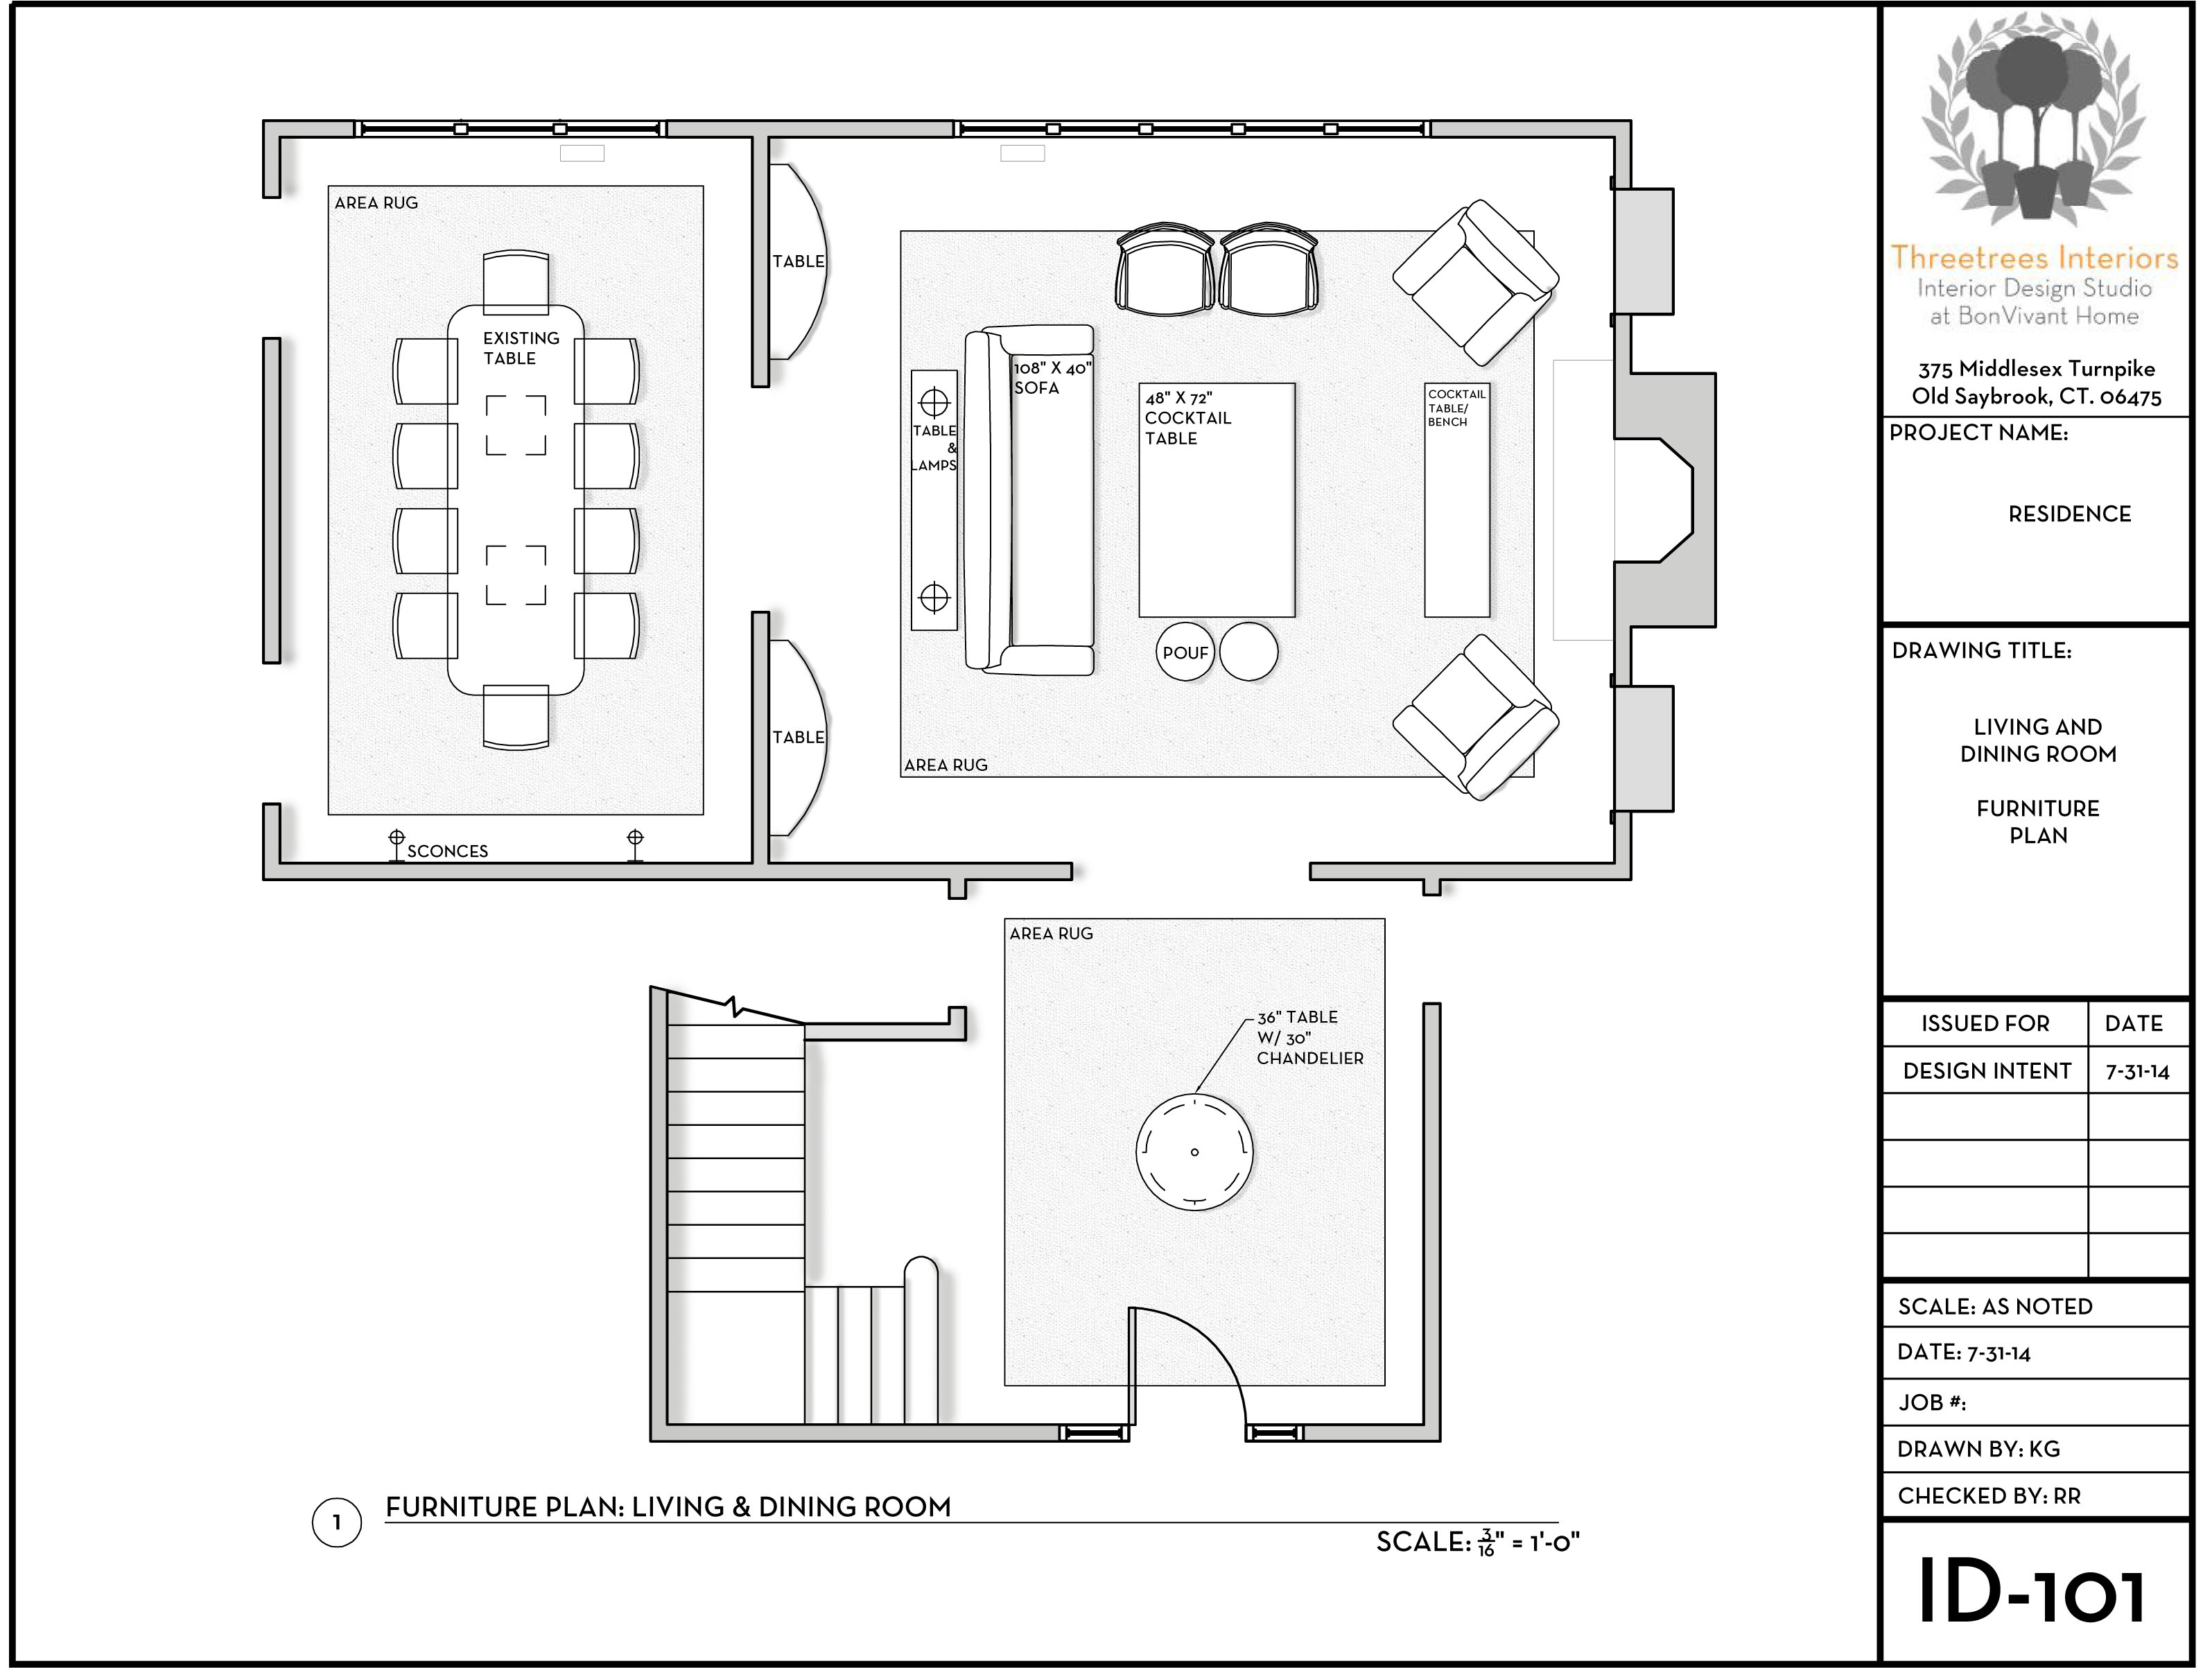 medium resolution of space planning and schematic design threetrees interiorsdocument schematic designs to create a visual for design intent